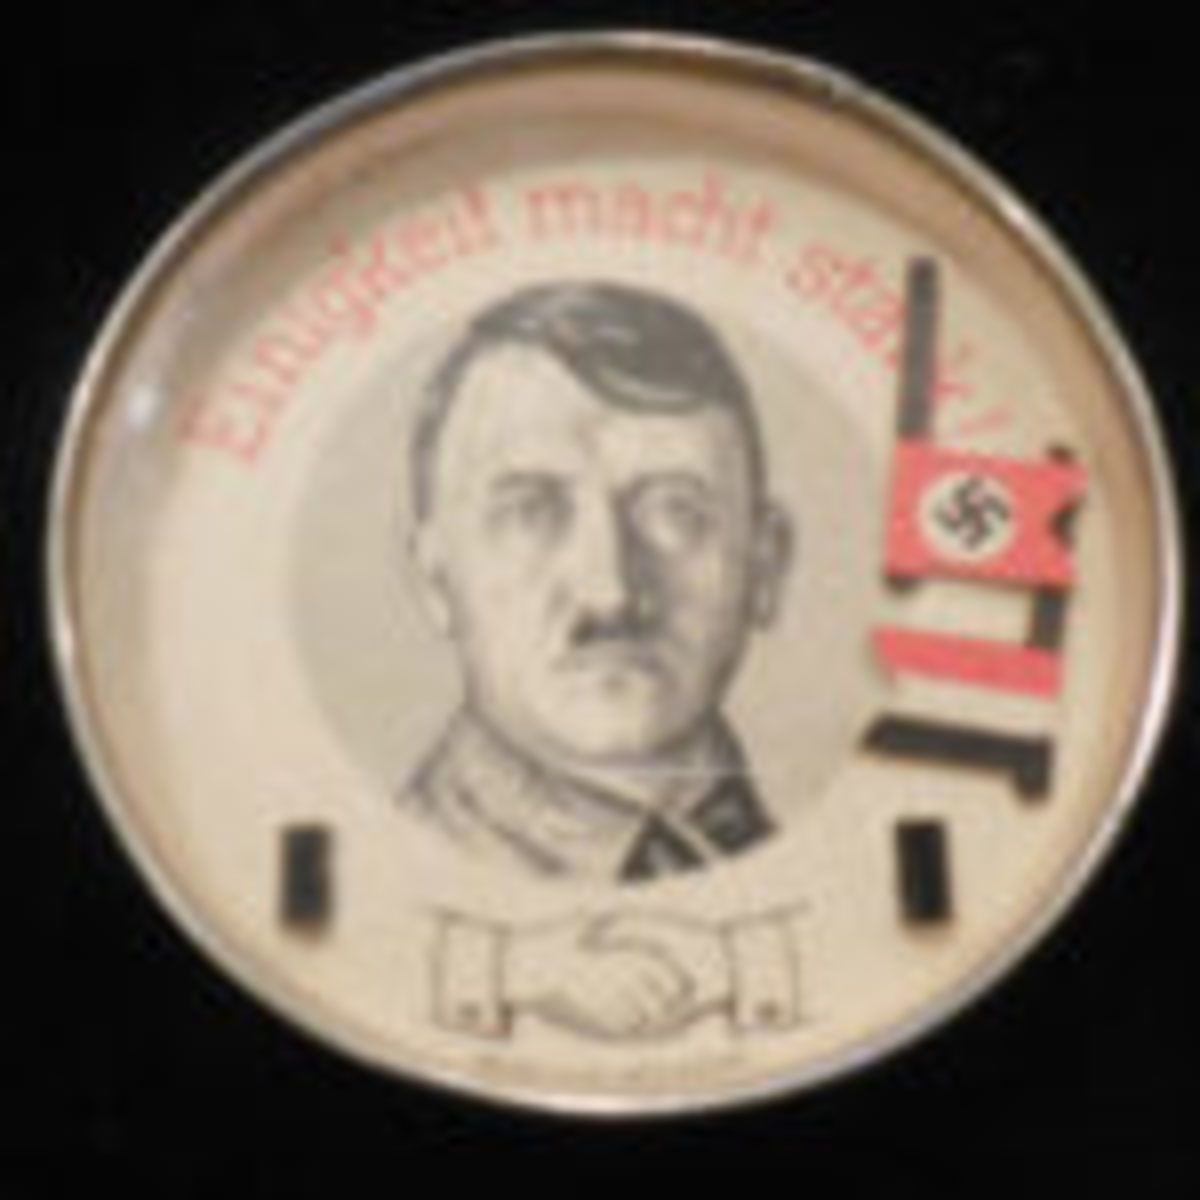 A Hitler/Nazi dexterity puzzle from the Herb Bassett Collection. Courtesy of Herb Bassett.